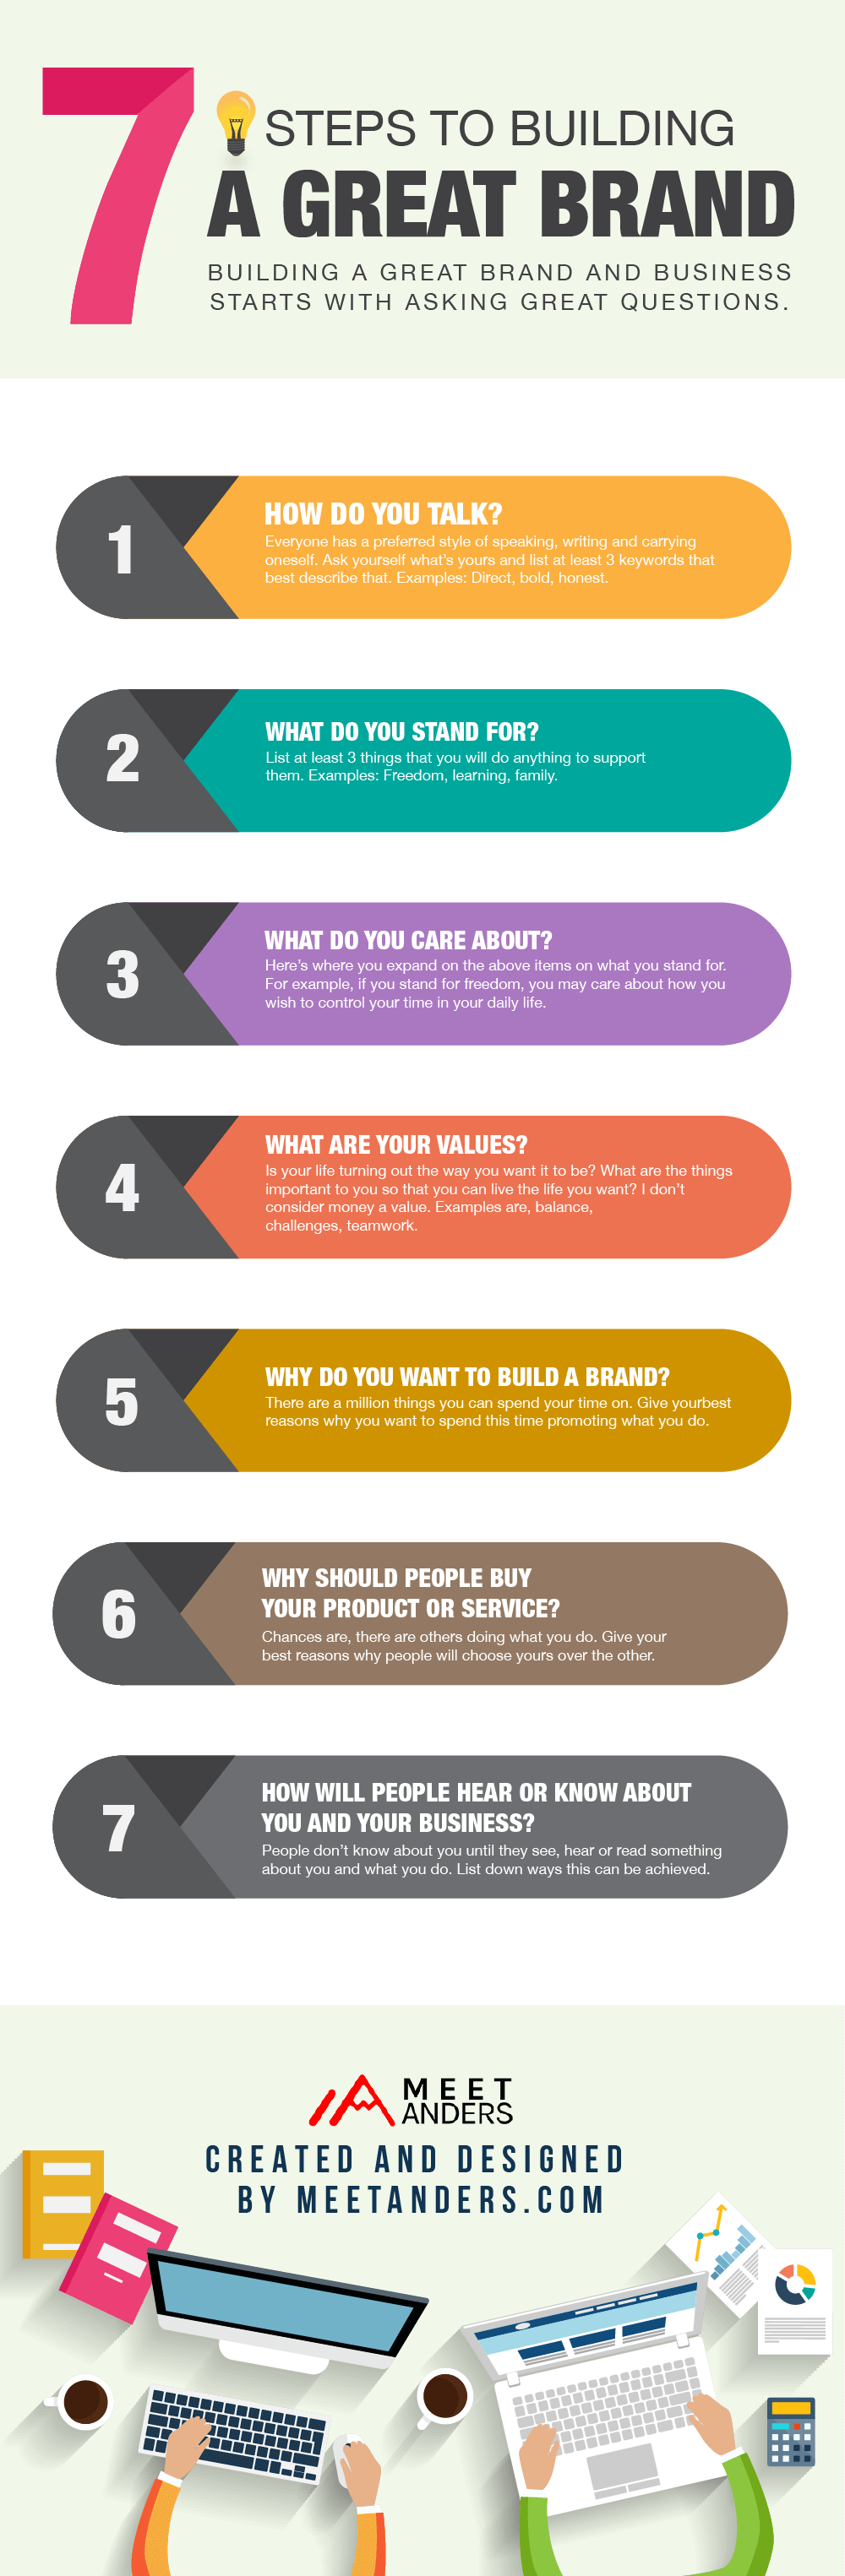 ma-infographic-7-steps-to-build-a-great-brand-031018-1